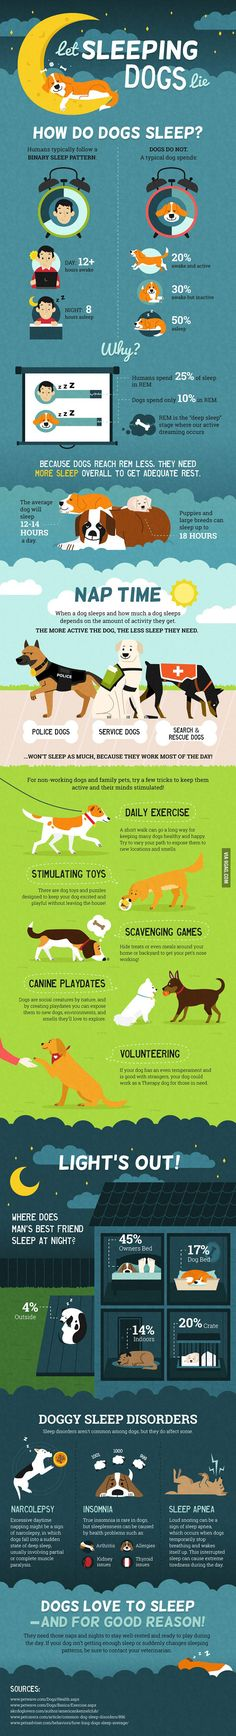 How Much Sleep Do Dogs Need? - 9GAG